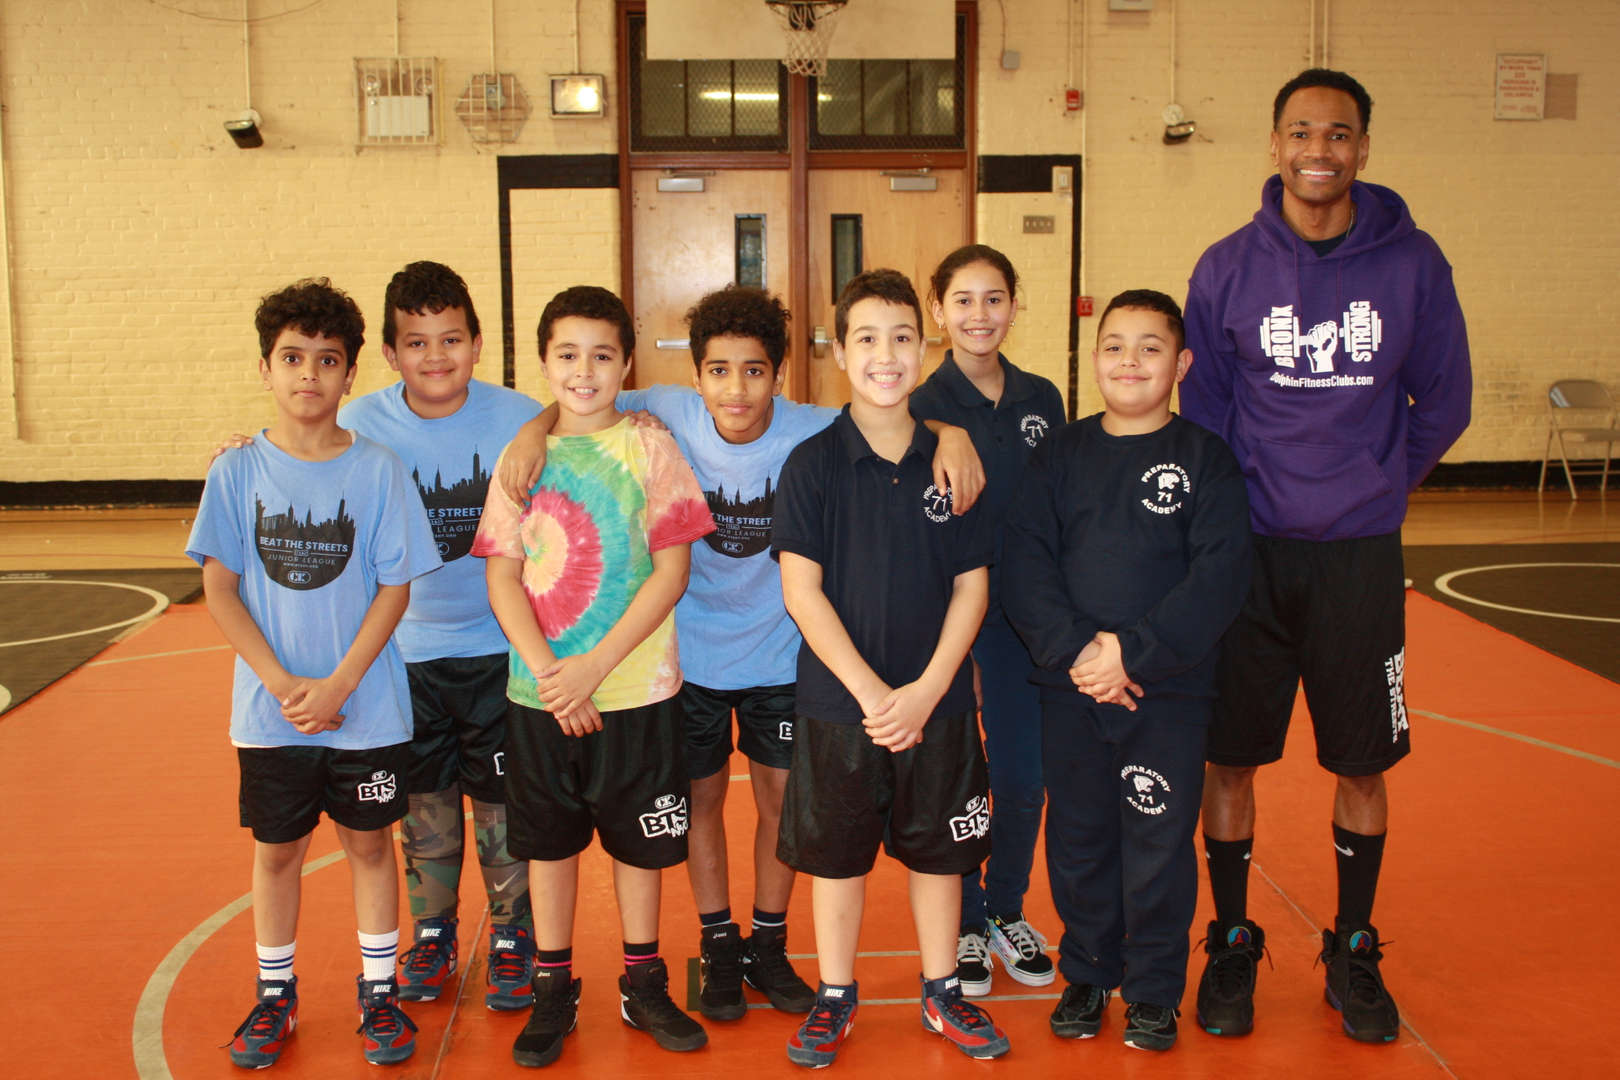 PS 71 Wrestling Team Photo with coach Mr. DeSaque